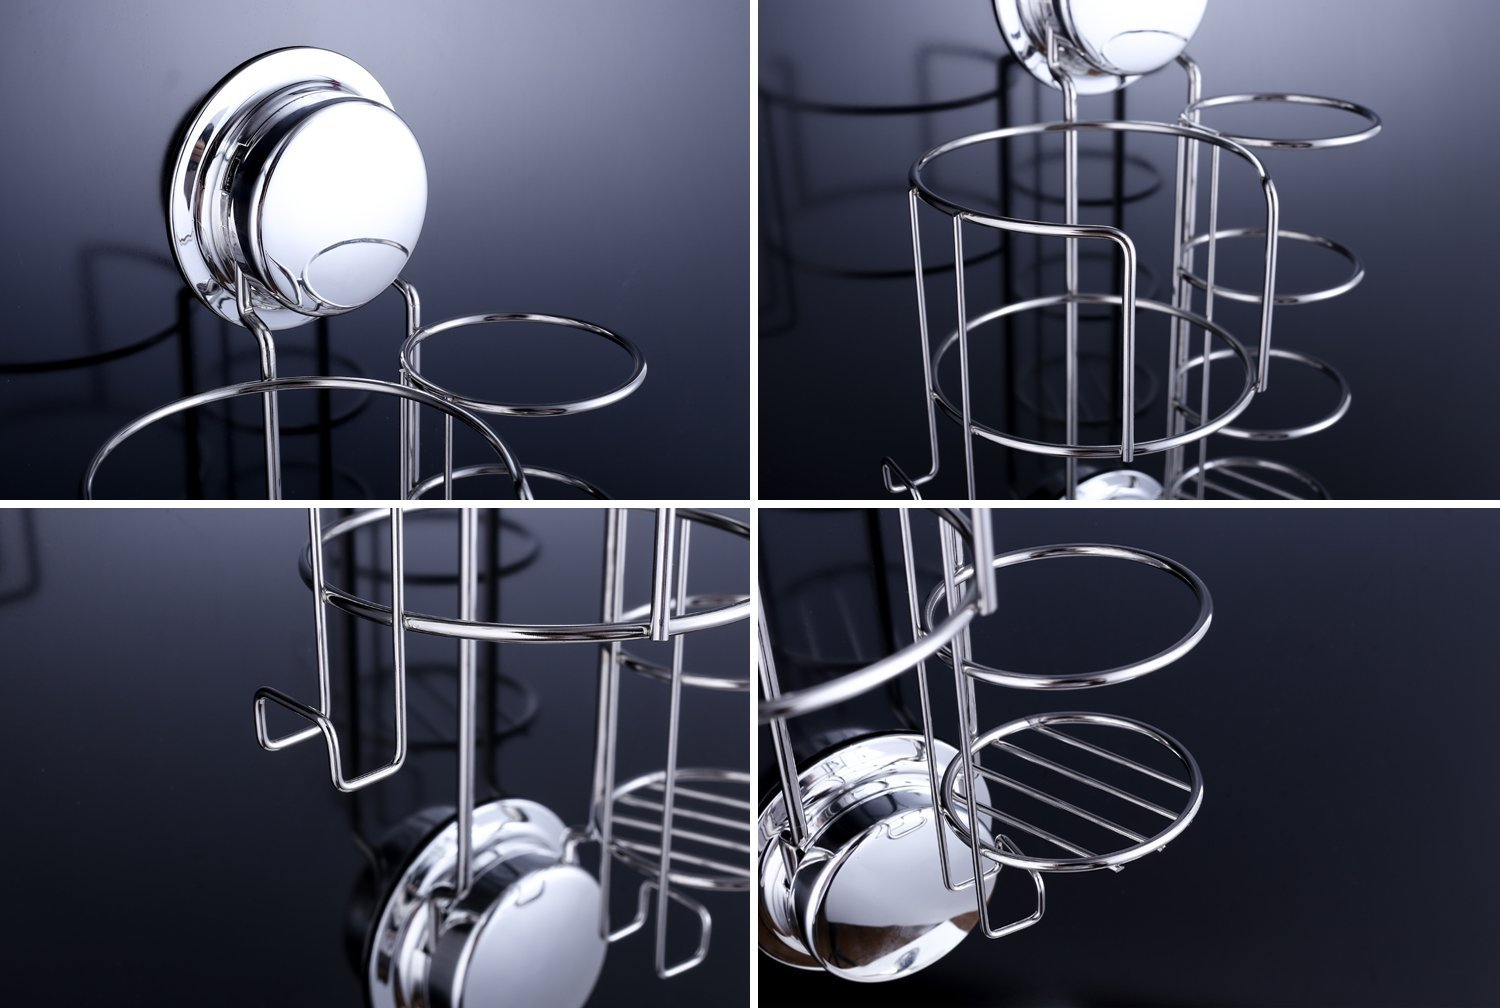 15 x 9 x 23.5cm//5.9 x 3.5 x 9.3 inches Stainless Steel Hairdryer Holder with Cable Holder for Hair Straighteners//Curling Iron Installation by Suction Cups or Screws Ecoart